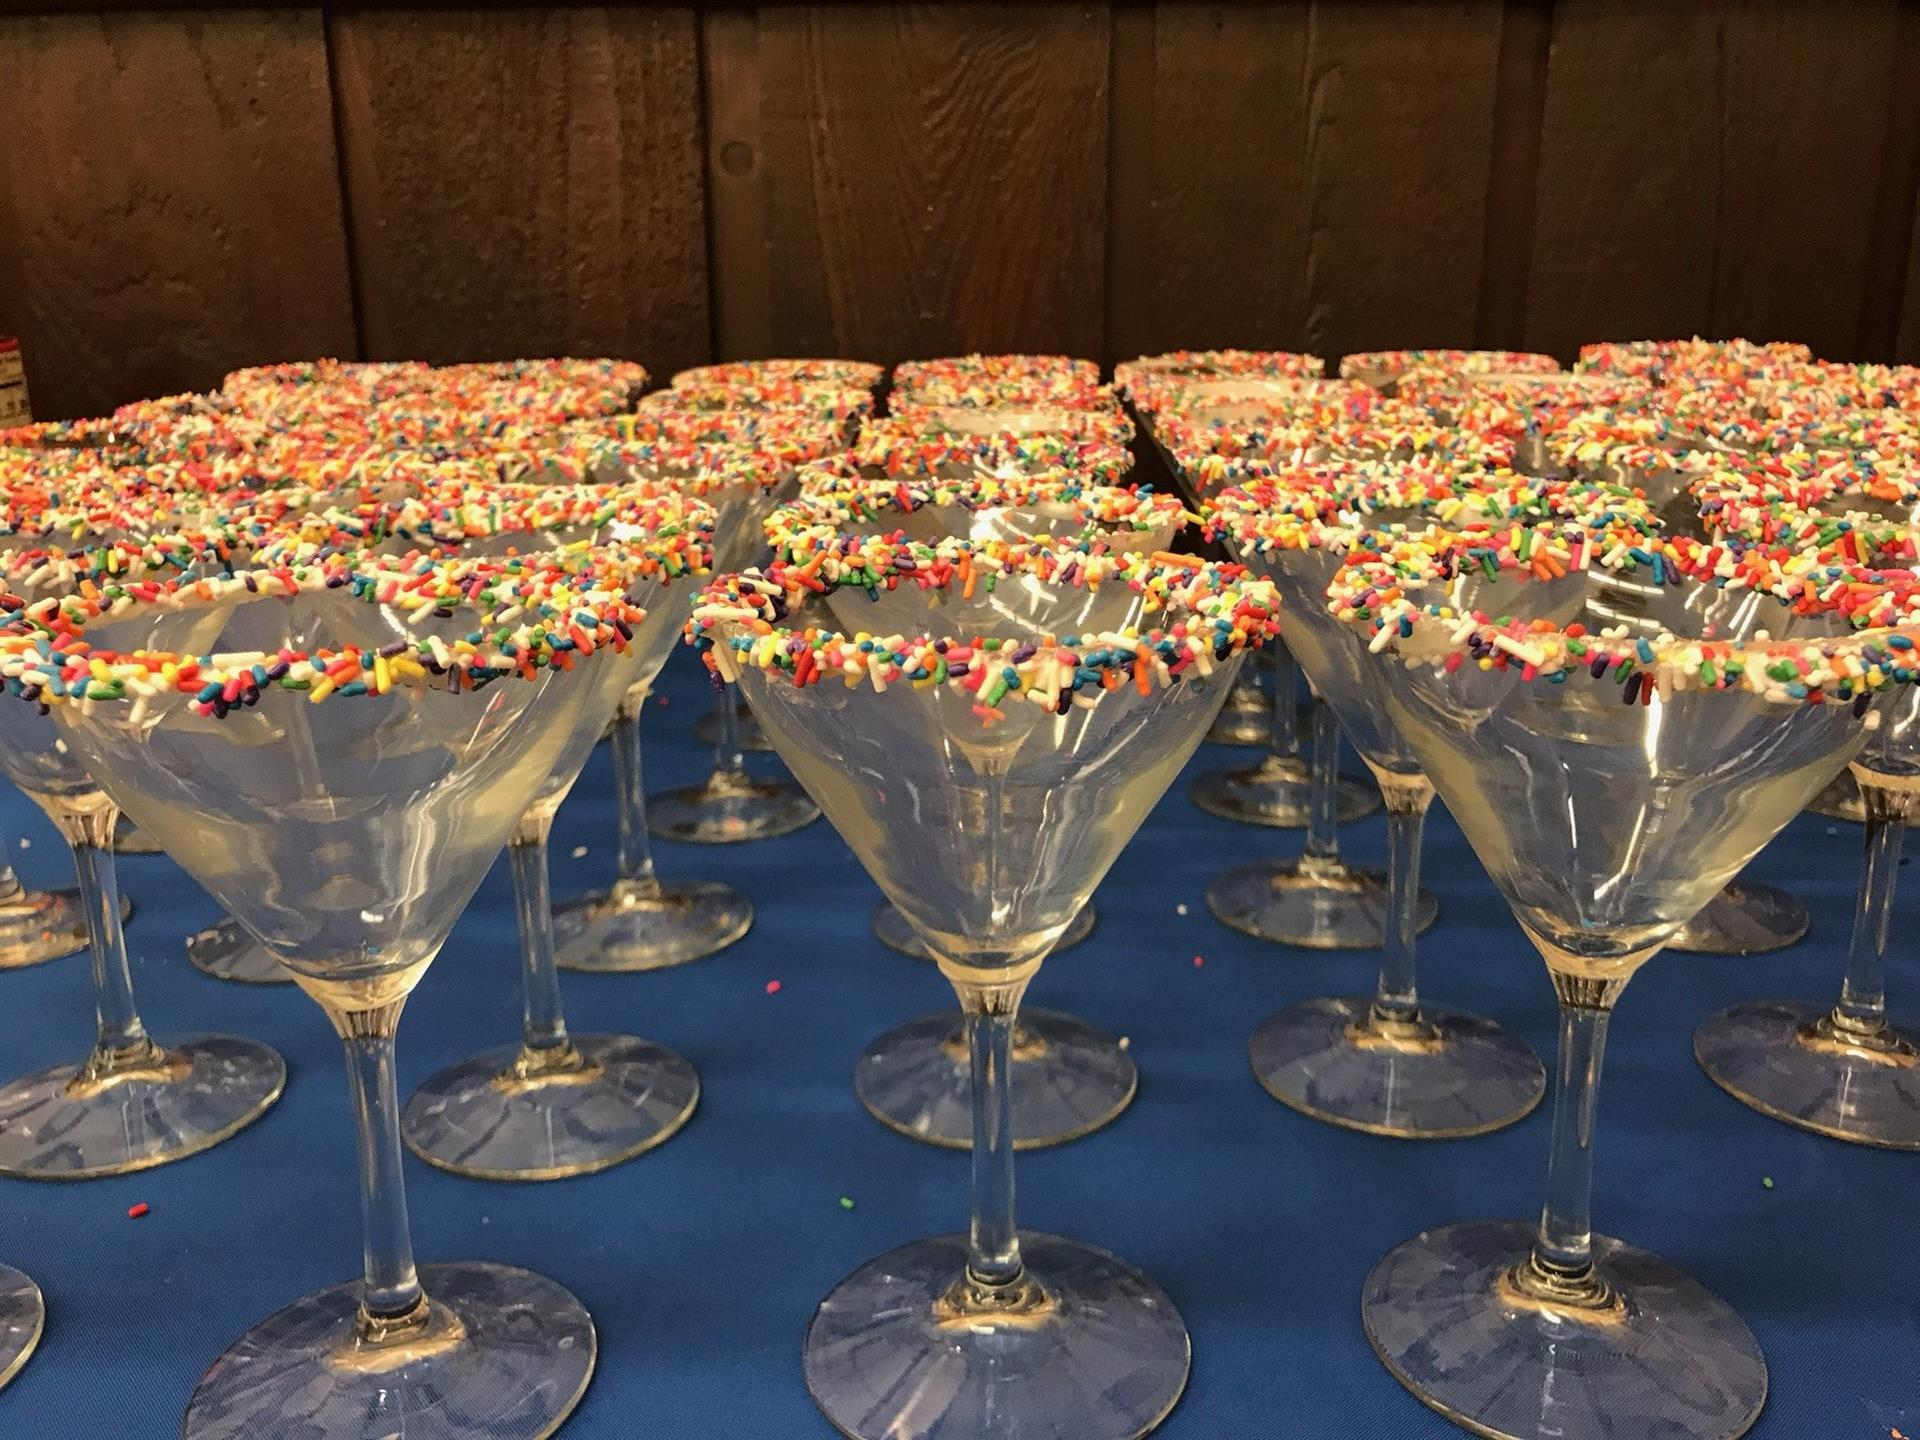 martini glasses with sprinkles around the rim